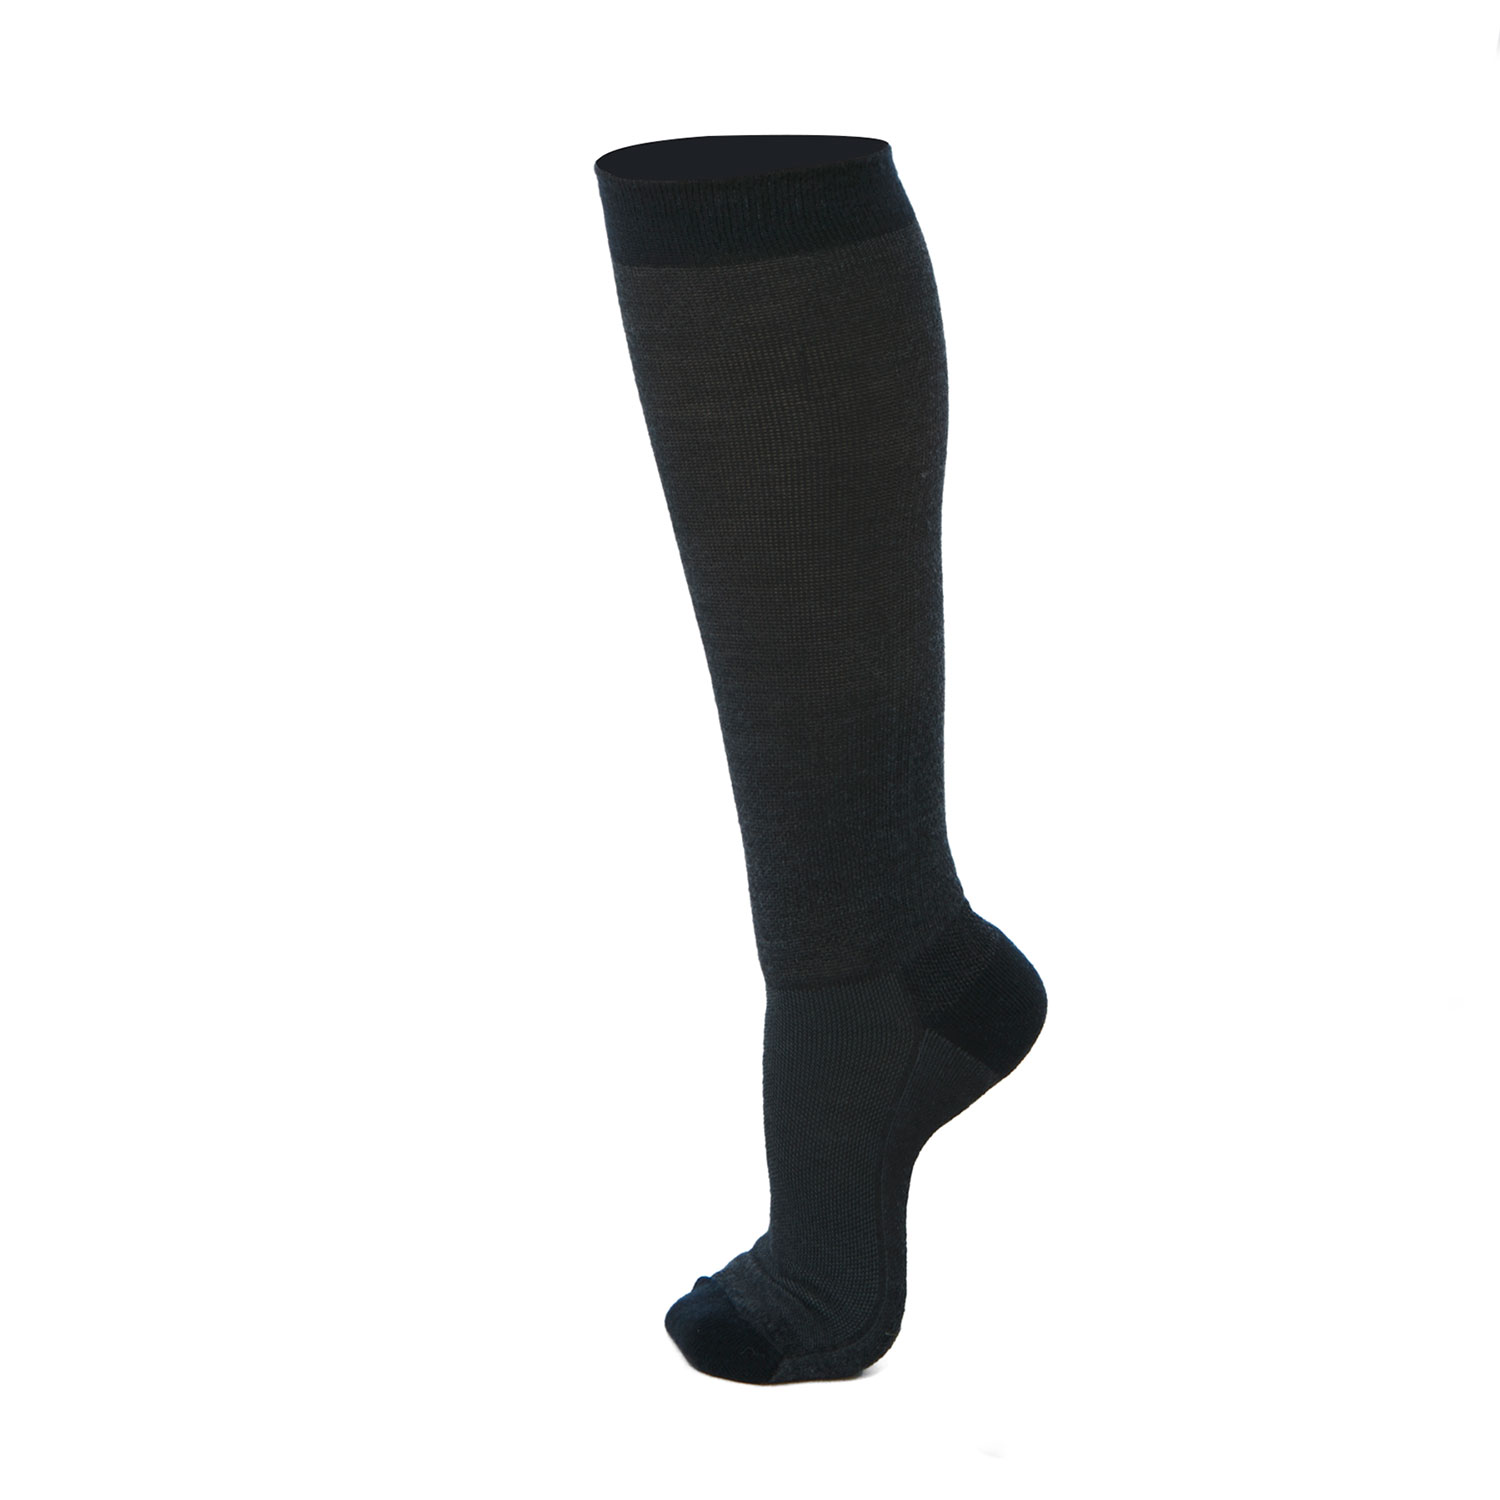 Tommie Copper Women's Compression Wool Over the Calf Sock